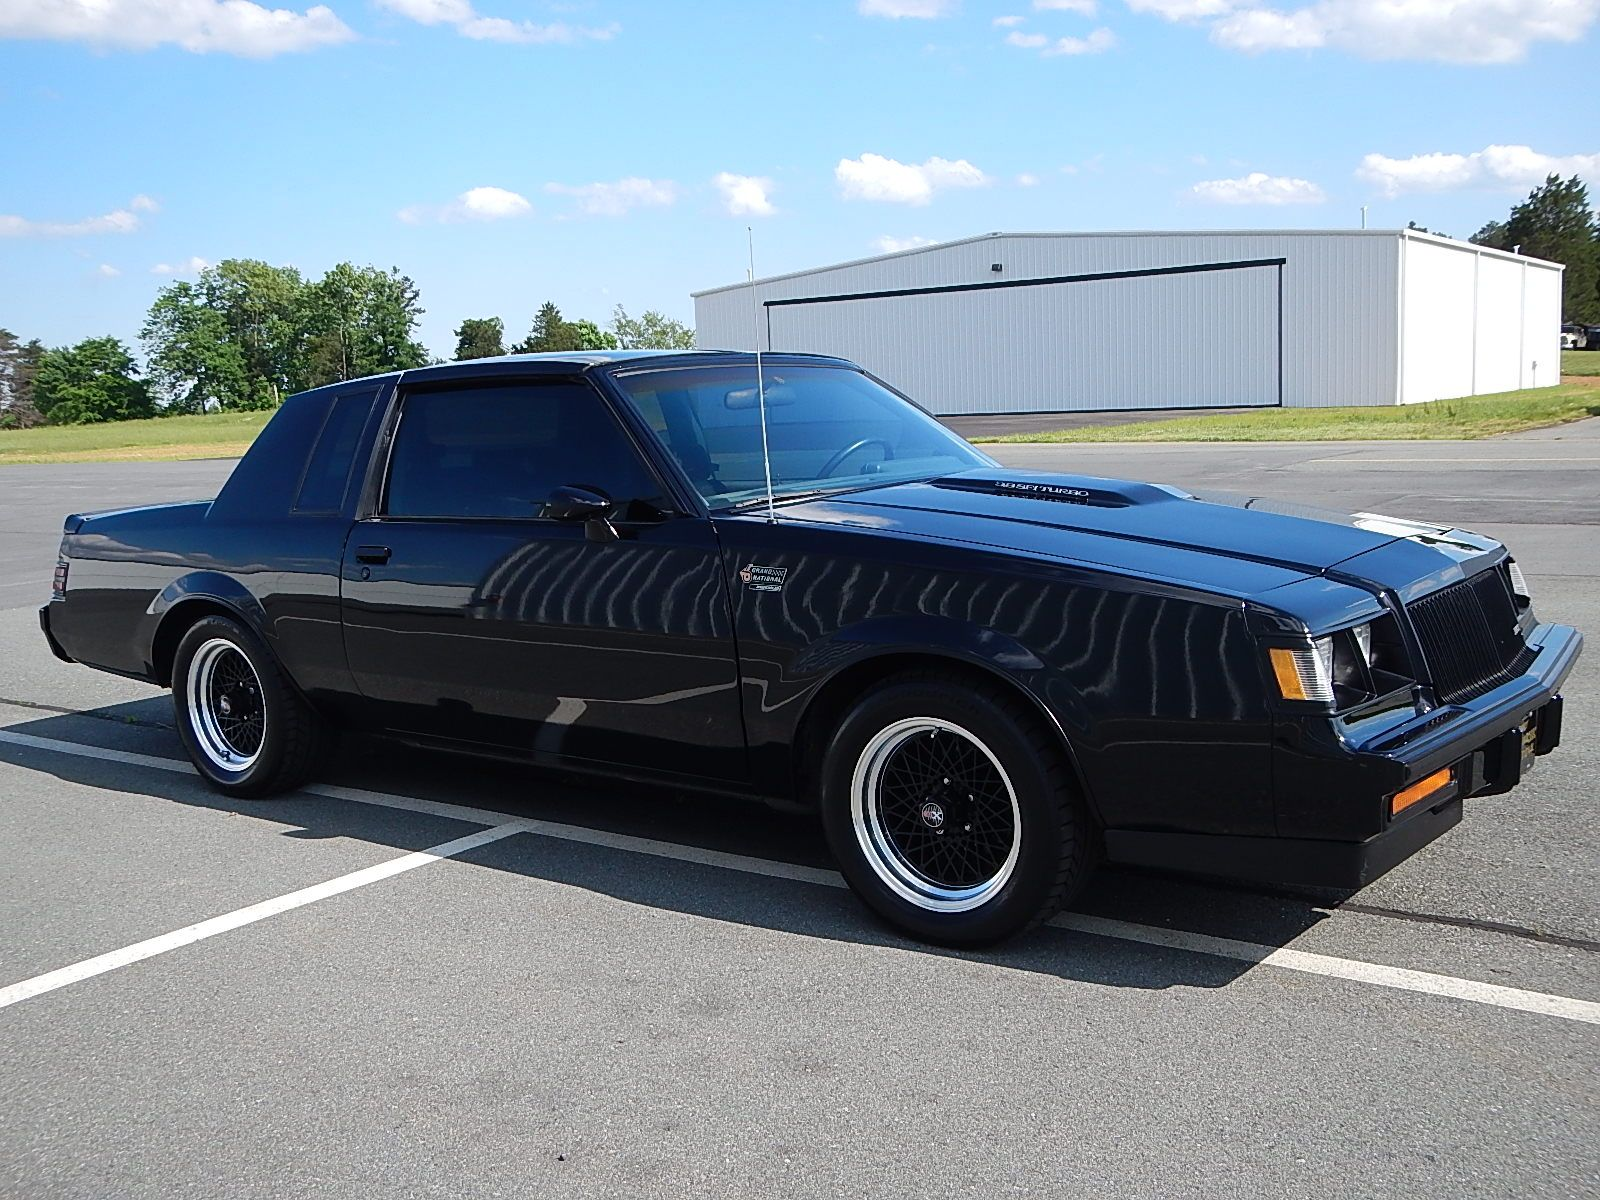 1987 Grand National T Top Buick turbo fast 0027.jpg